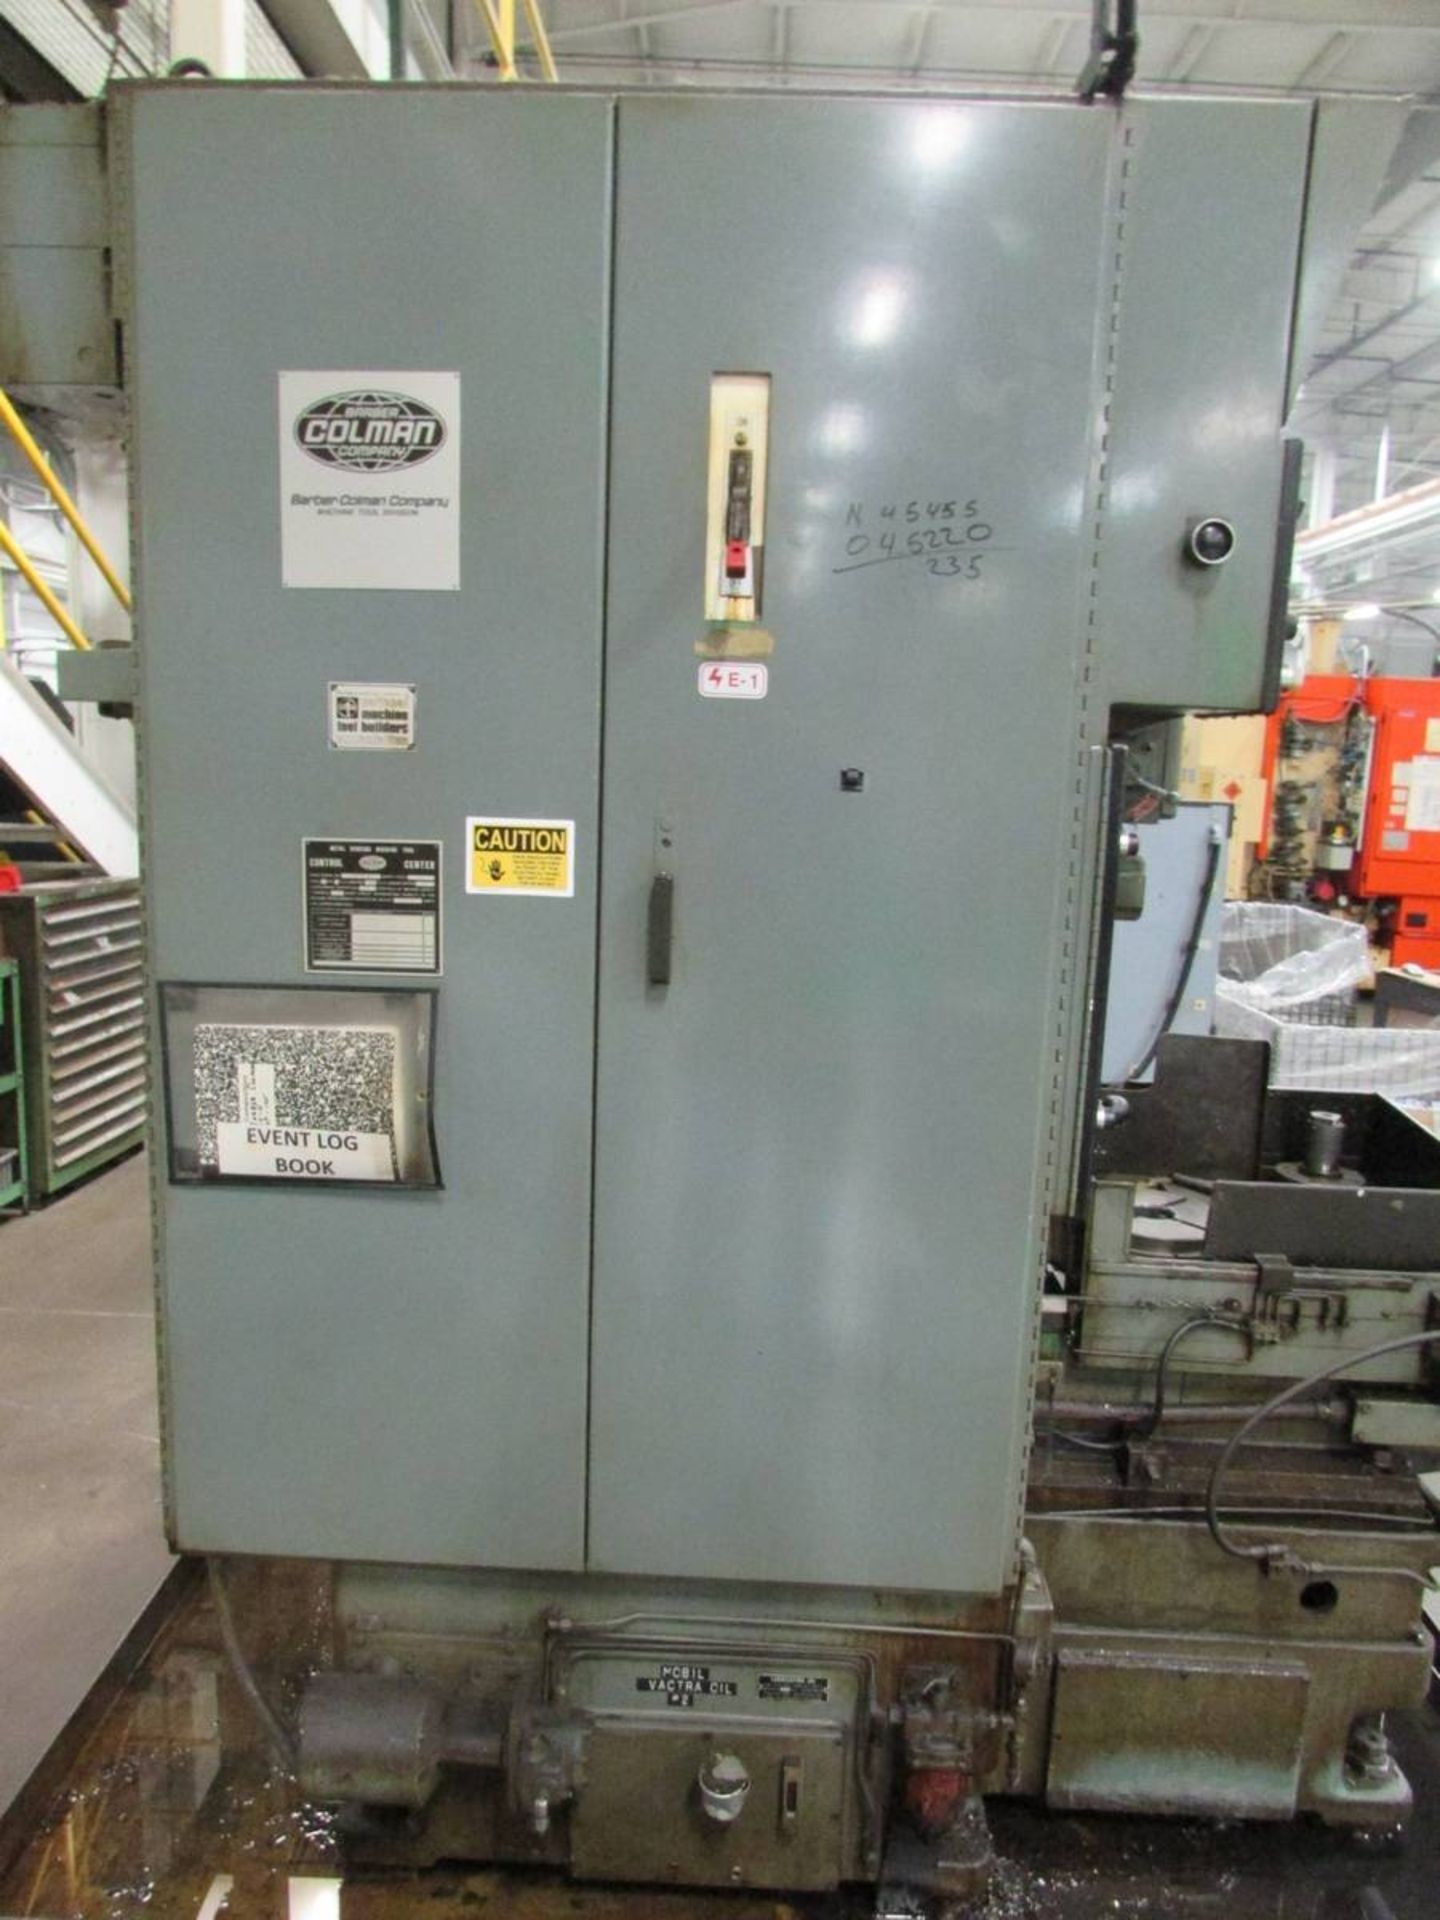 Barber Colman 18-04 Vertical Gear Shaping Machine - Image 16 of 19